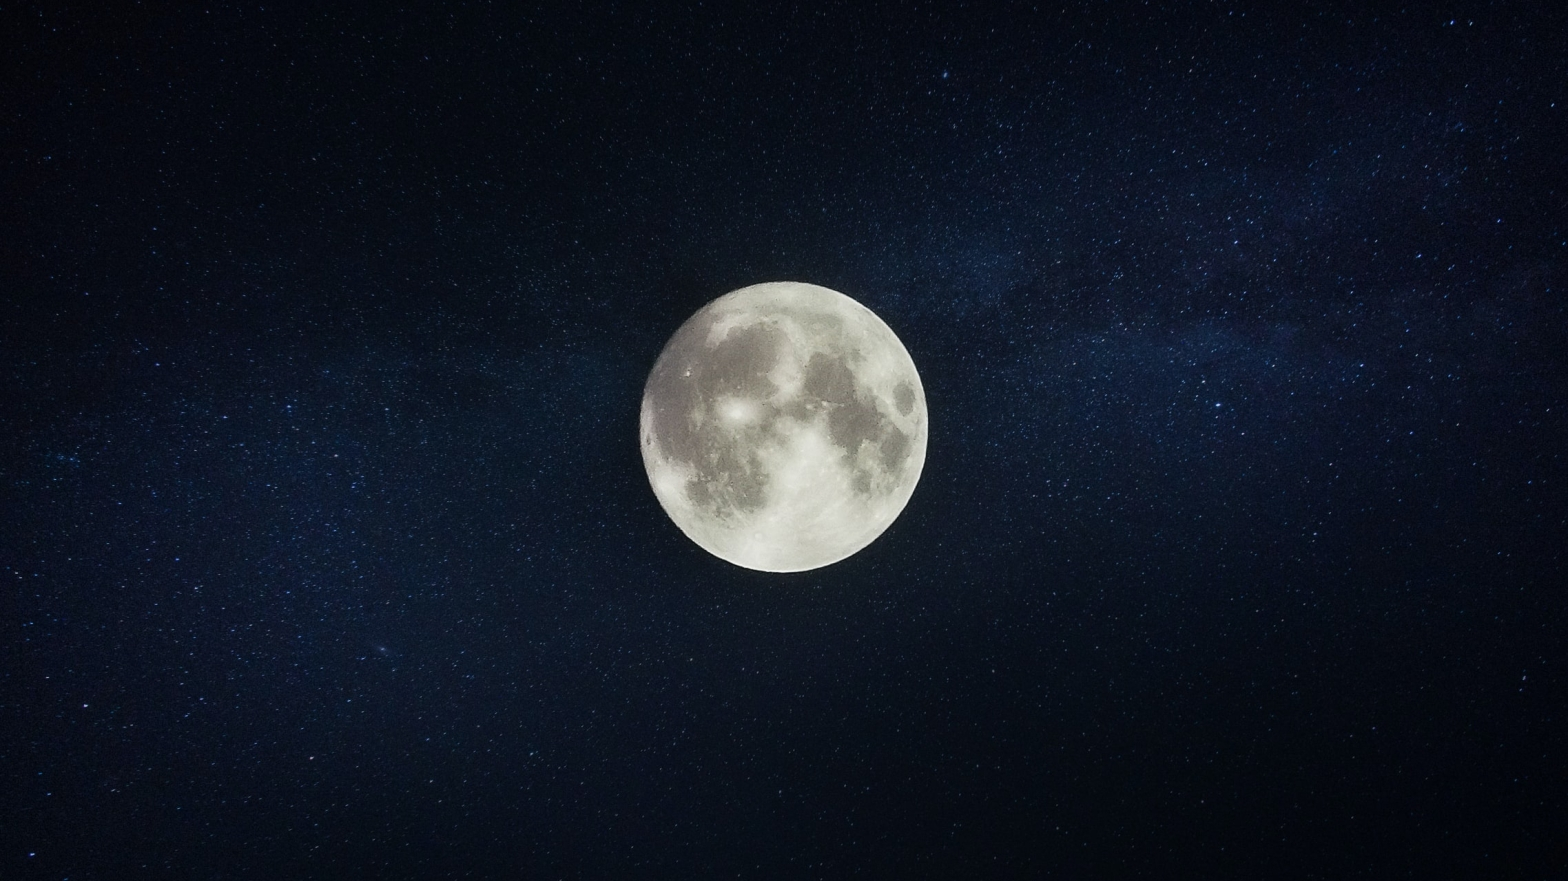 Image is a photo of a full moon in a dark starry sky